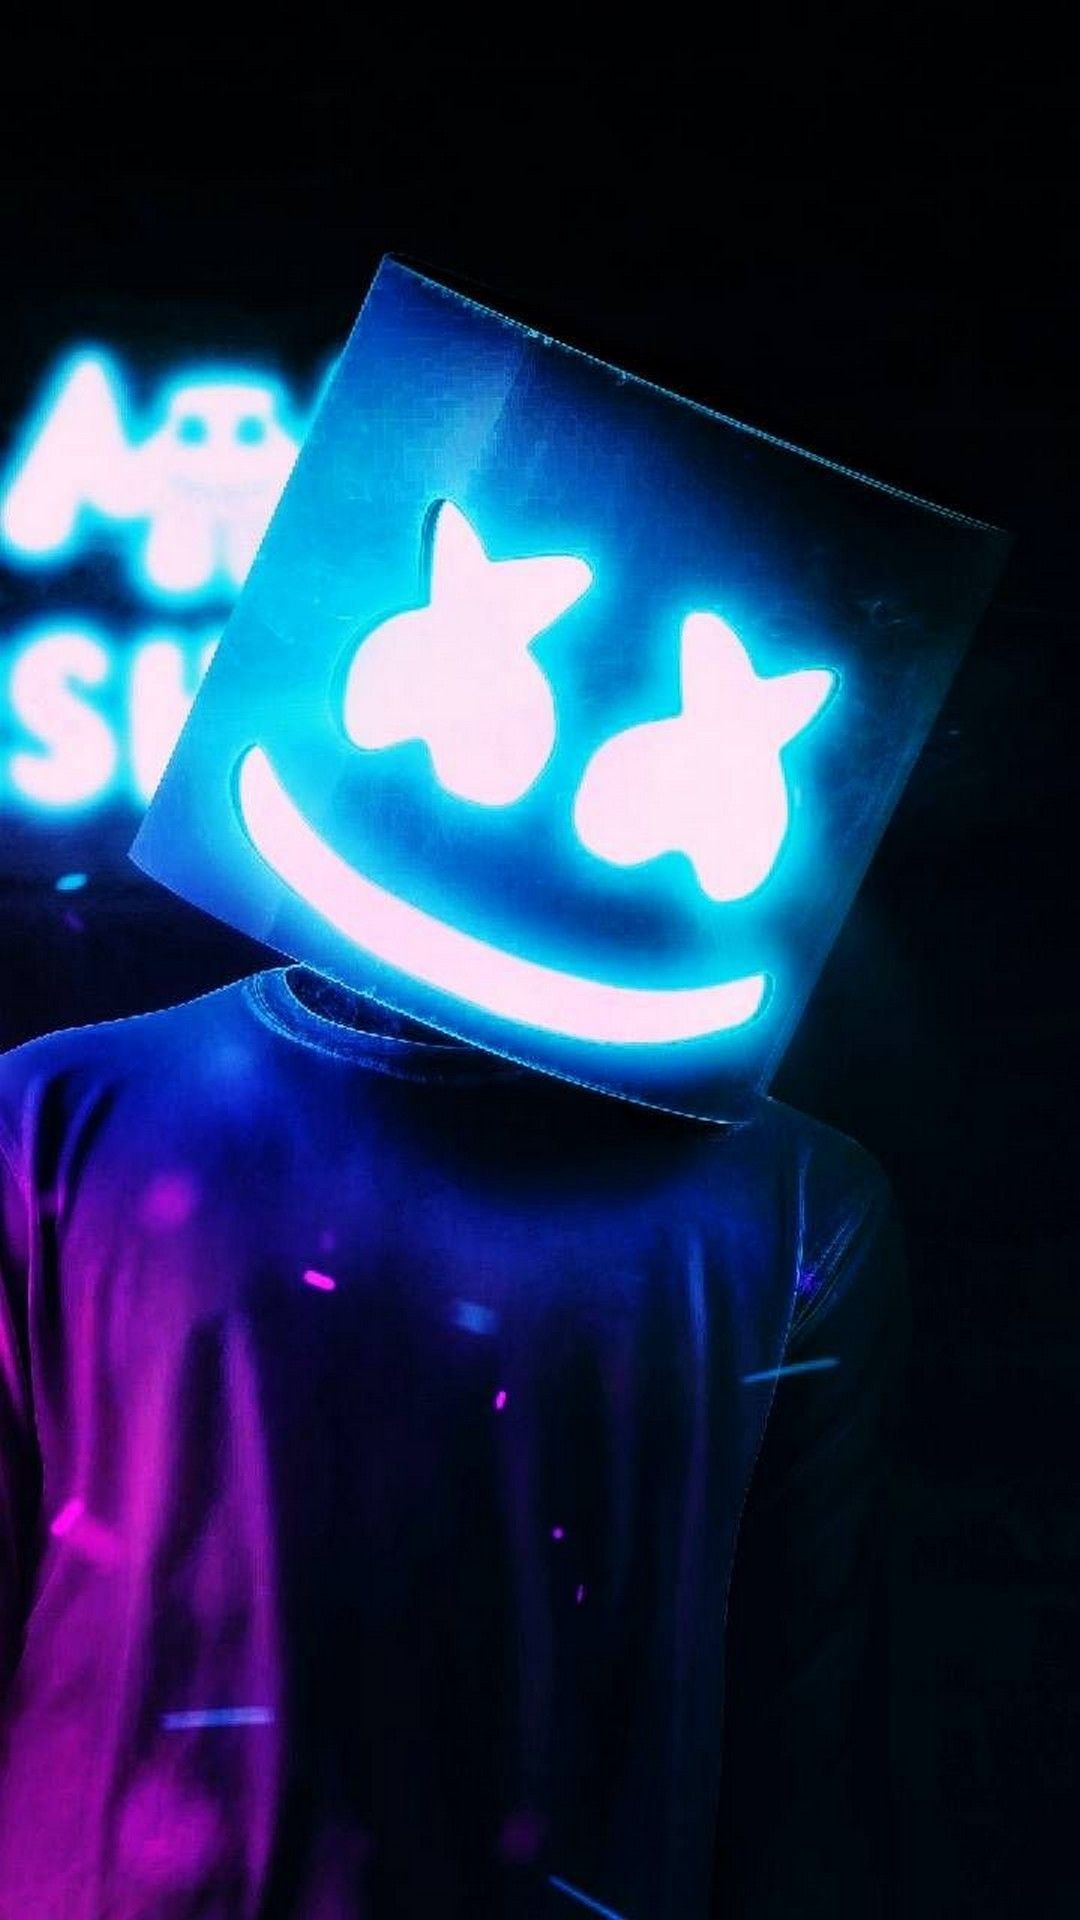 Marshmello Hd Iphone Wallpapers Top Free Marshmello Hd Iphone Backgrounds Wallpaperaccess